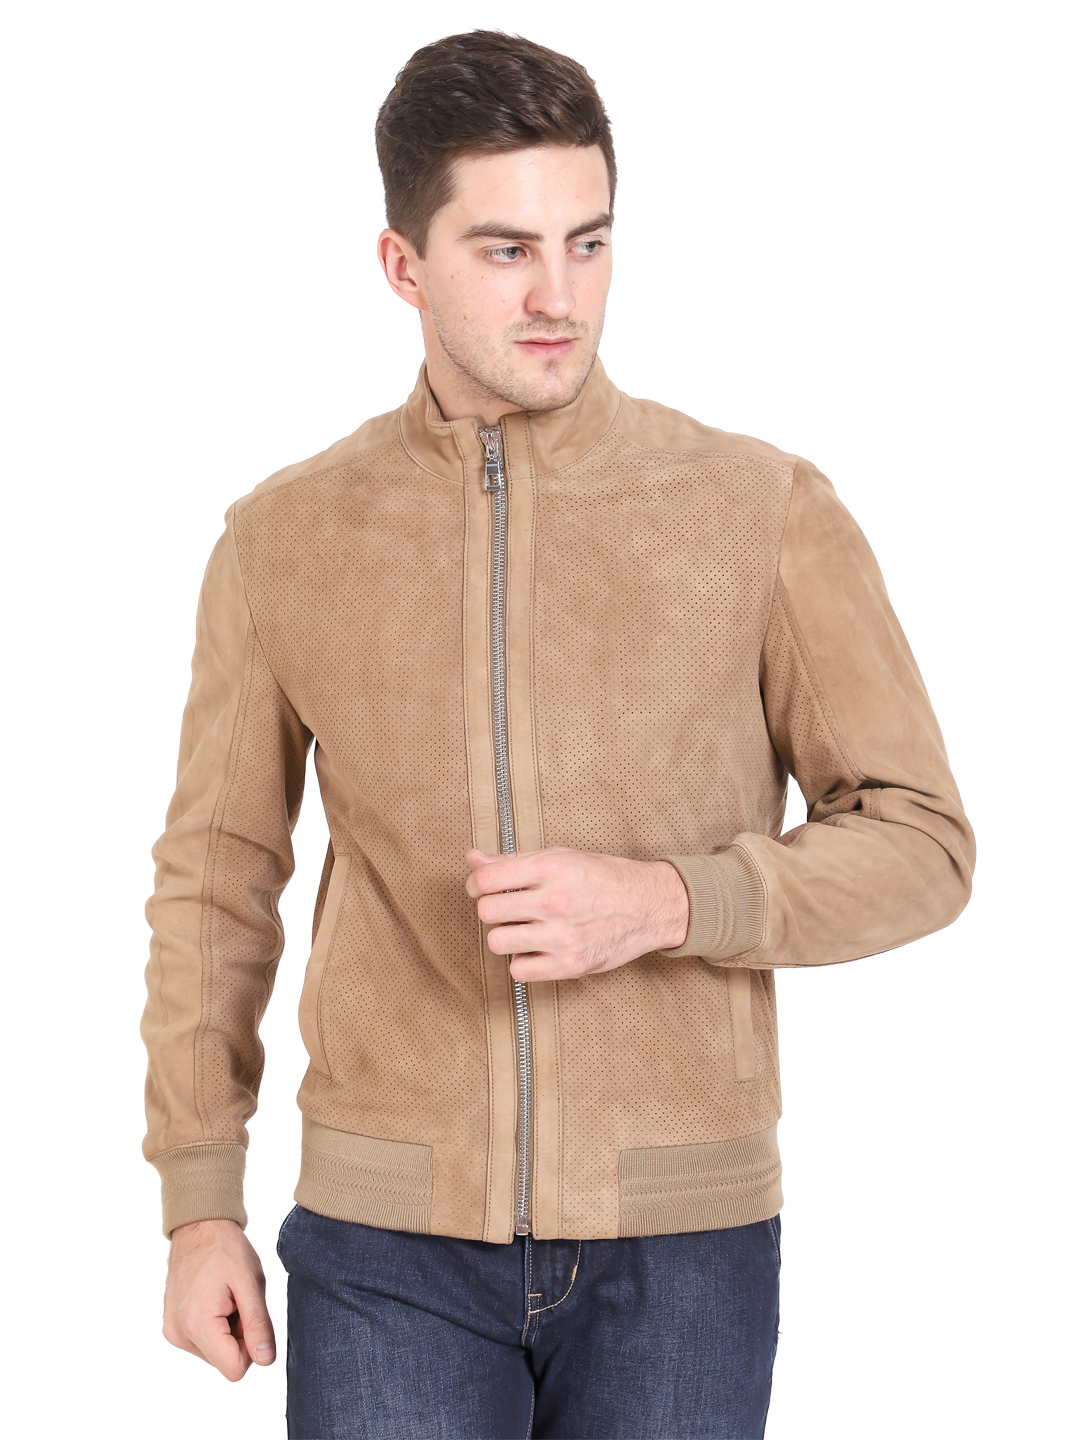 Justanned   JUSTANNED MEN GENUINE REAL LEATHER JACKET